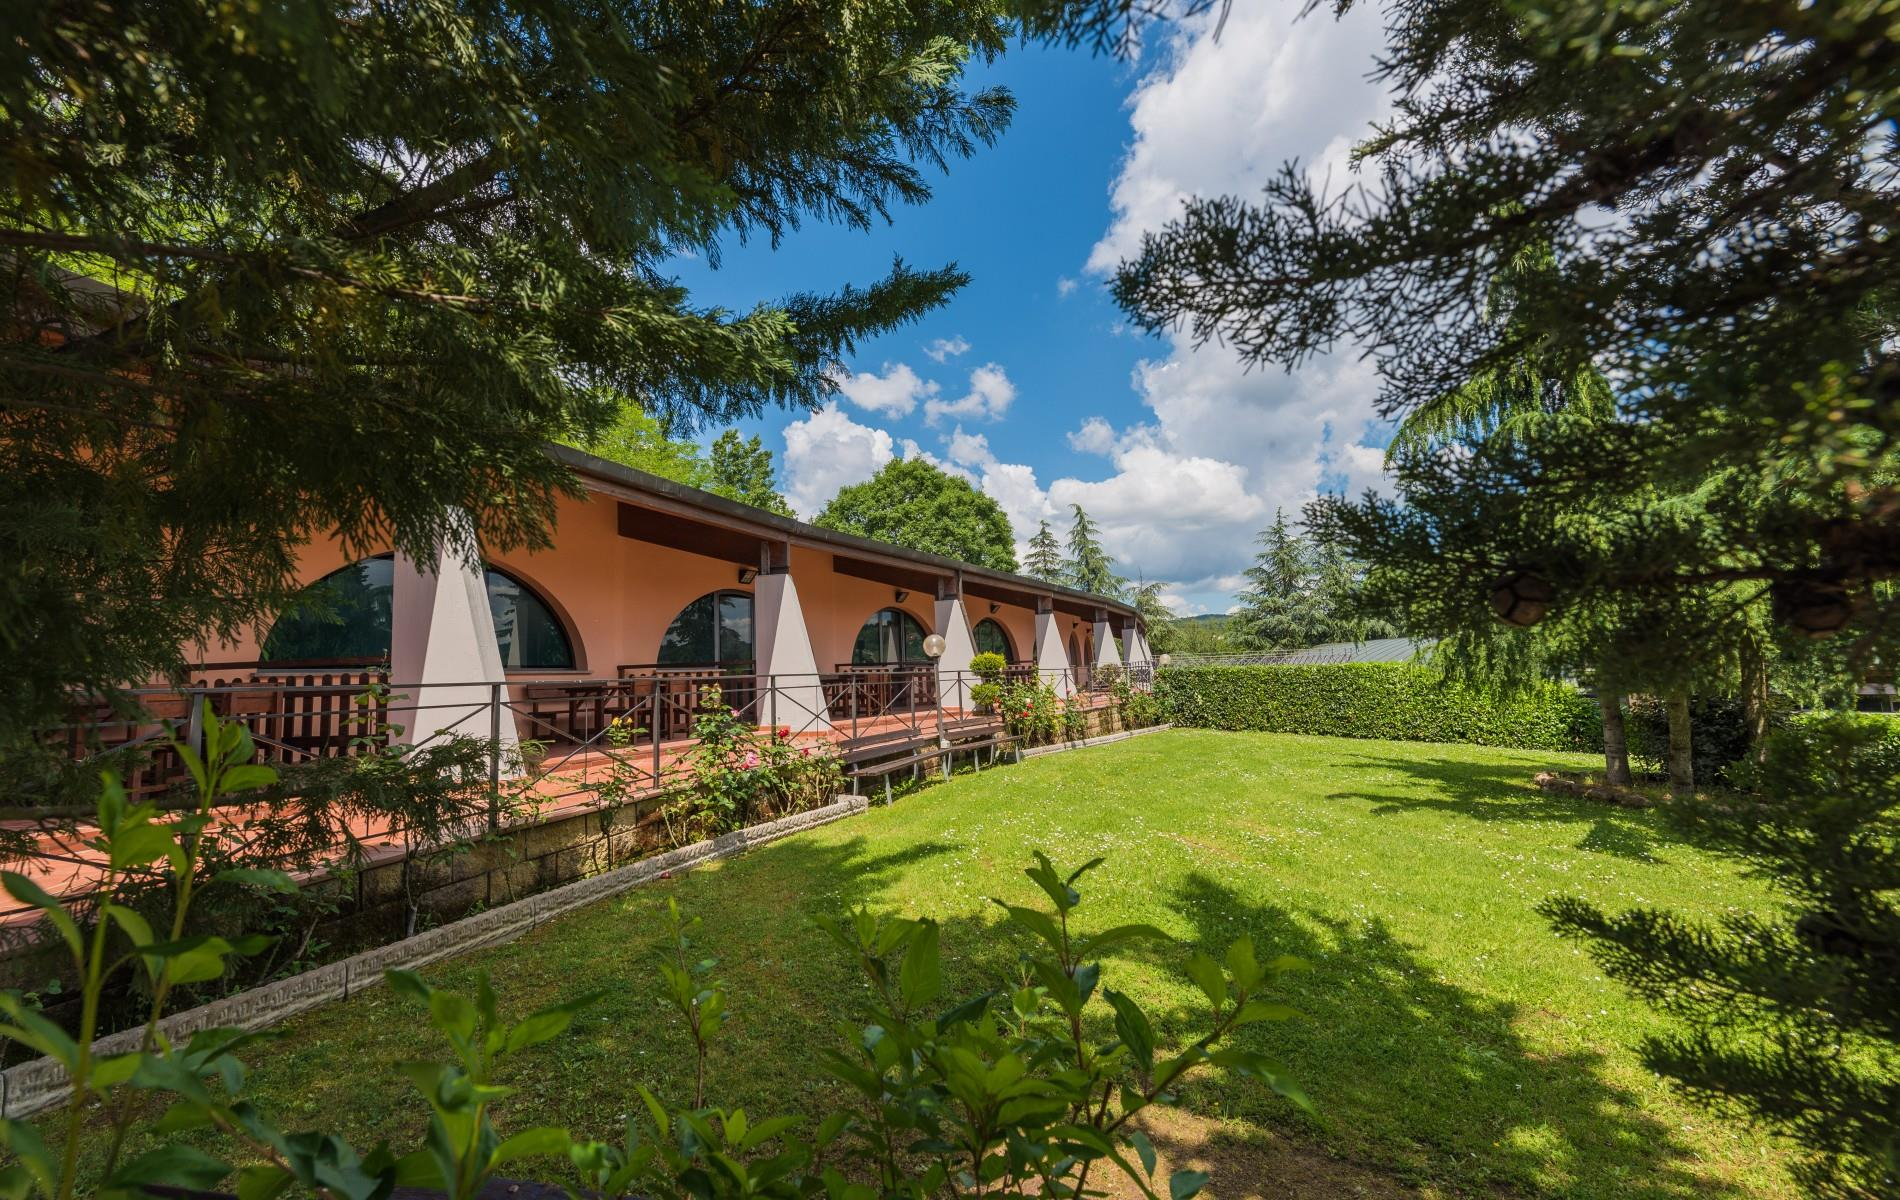 Establishment Camping Village Il Poggetto - Troghi - Firenze